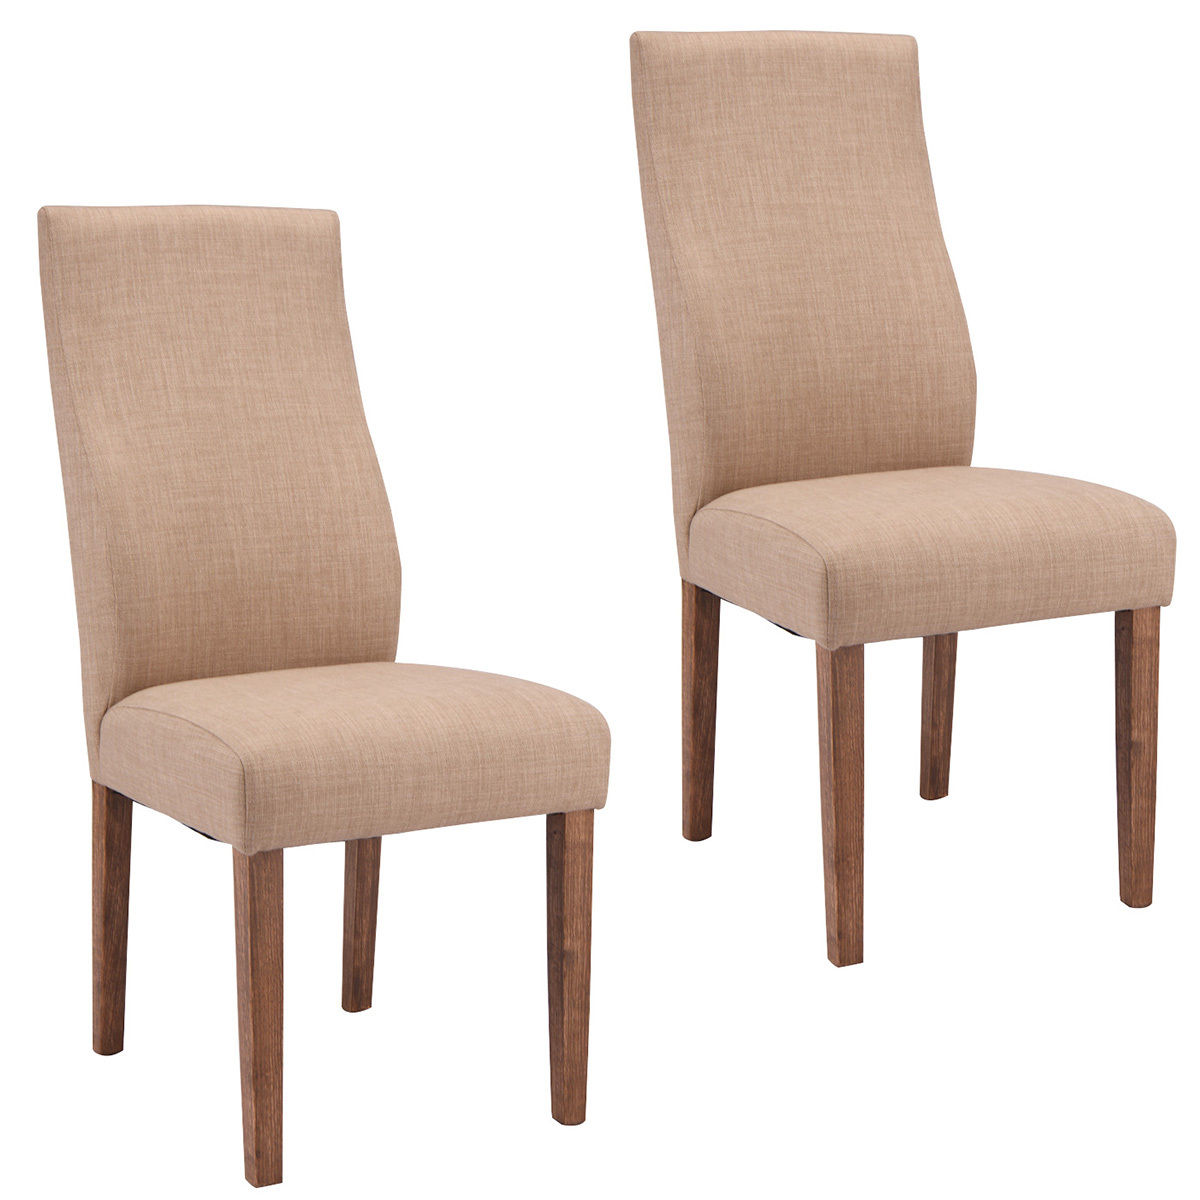 Costway Set Of 2 Dining Chairs Fabric Upholstered High Back Armless Home Furniture